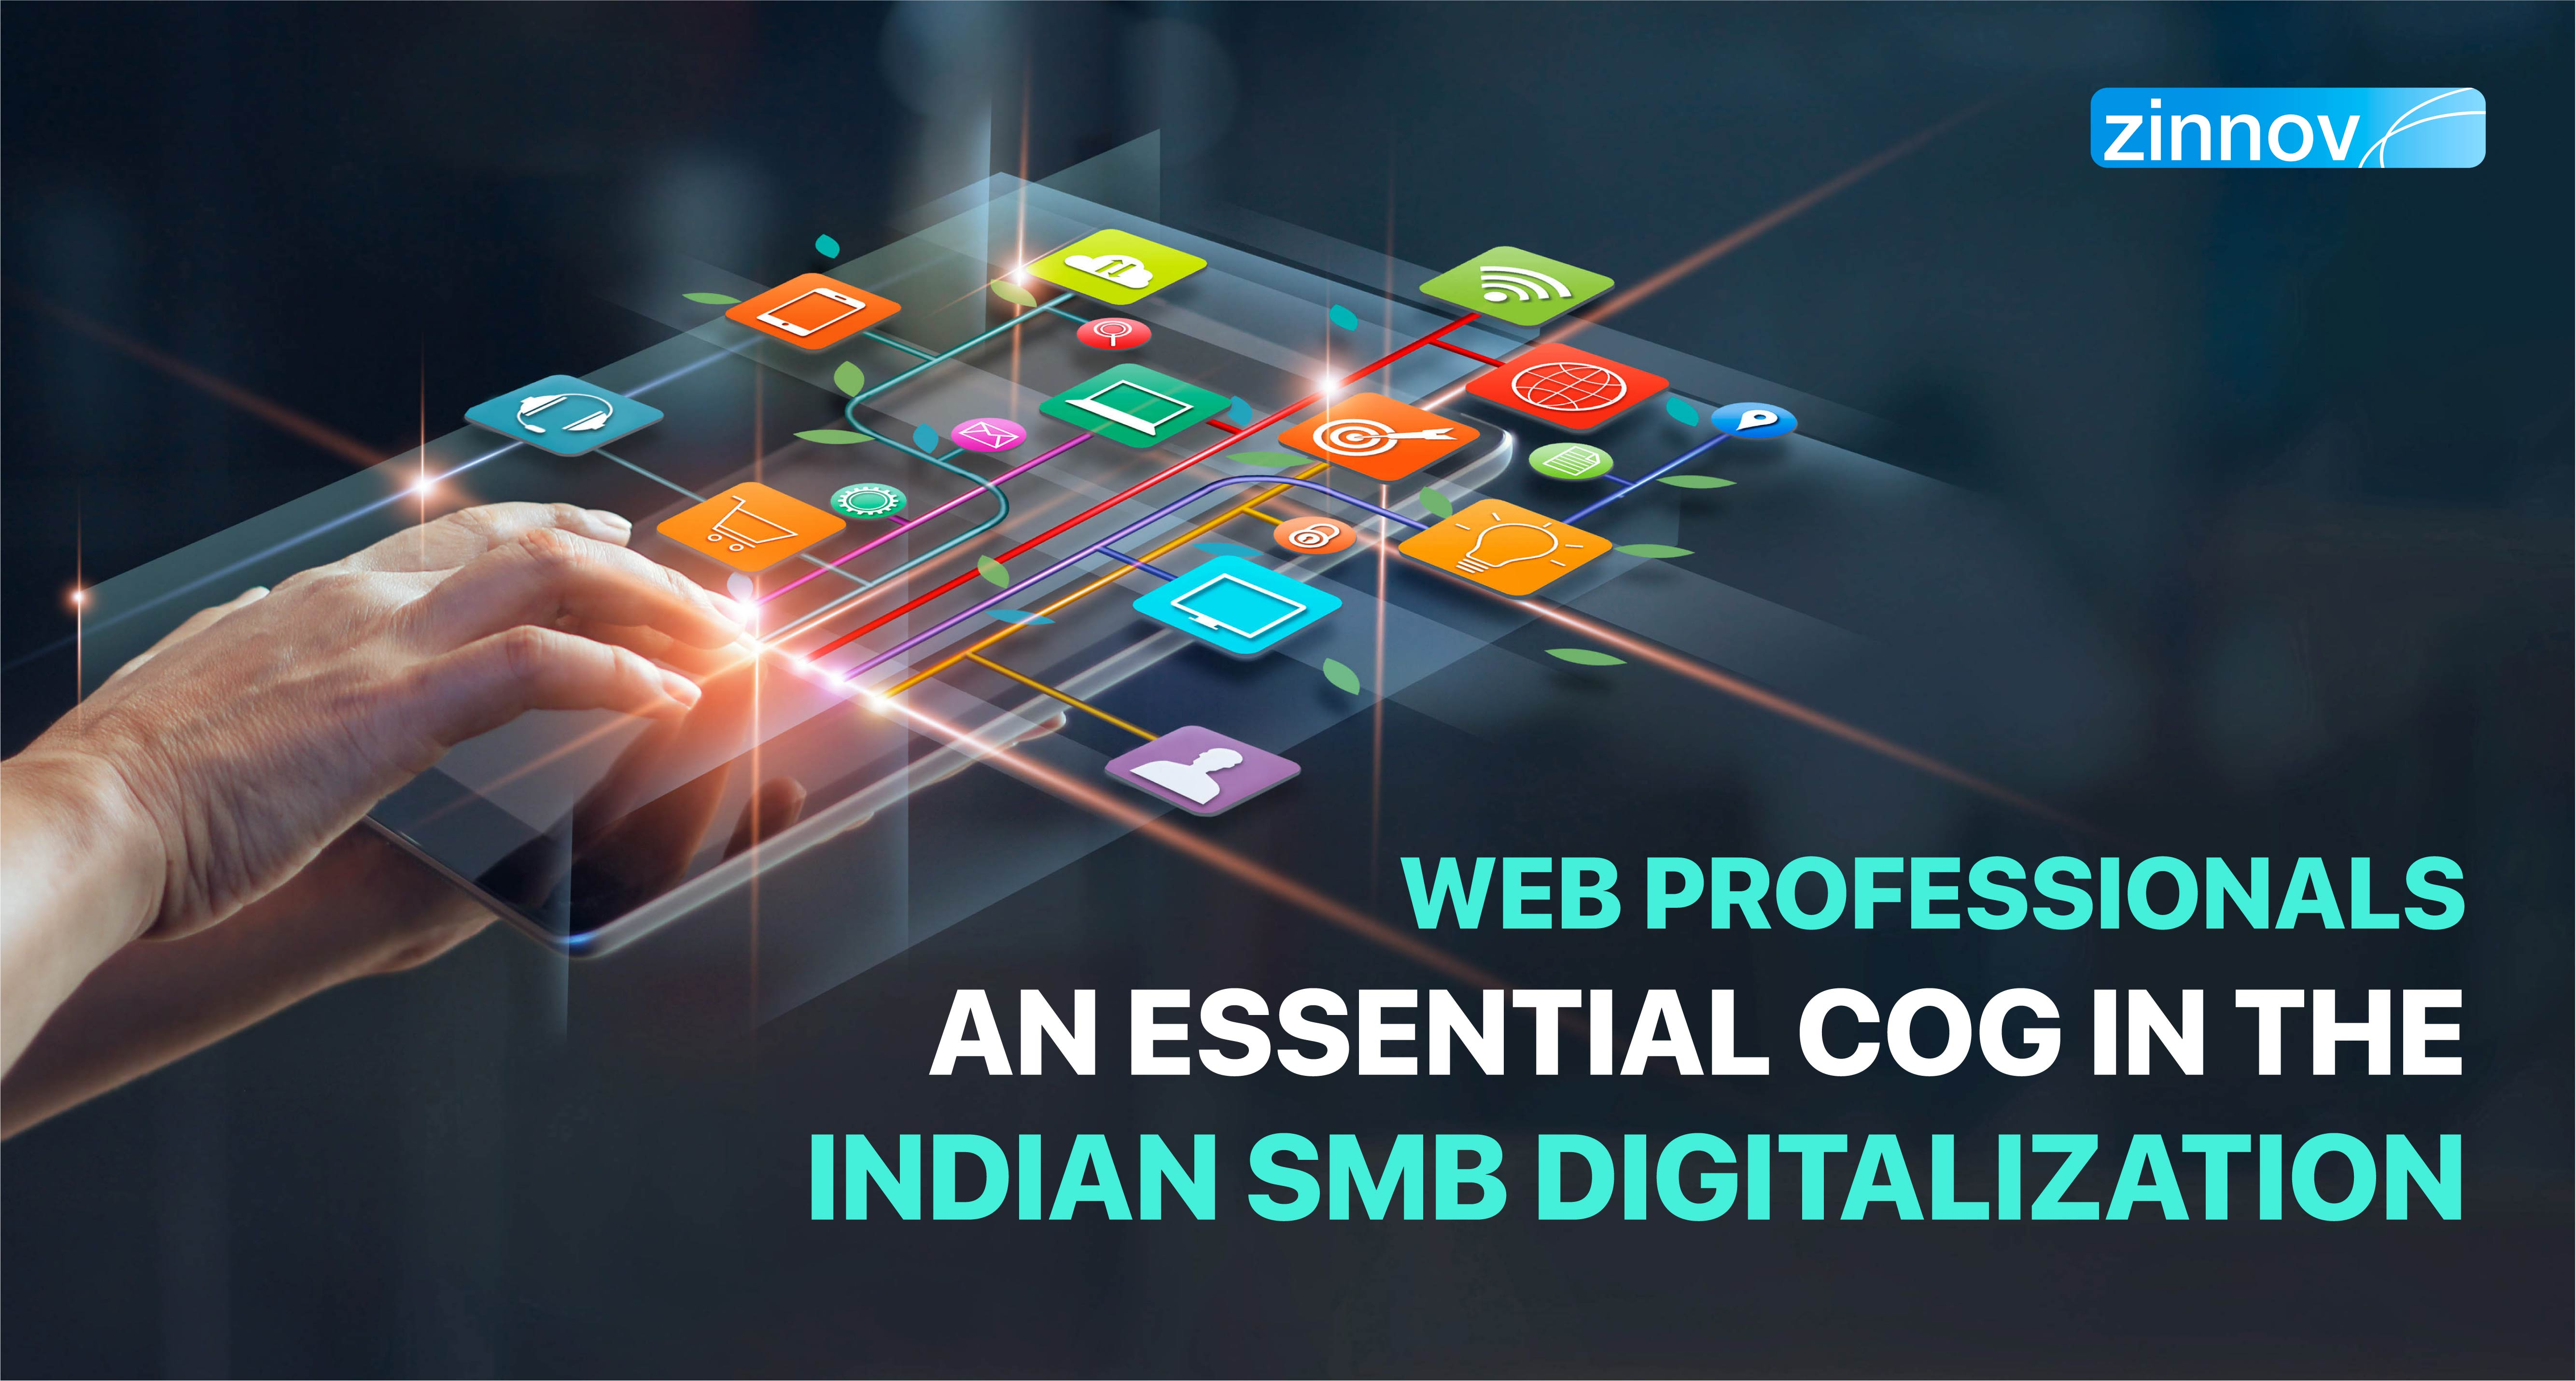 SMBs To Digital SMBs - Web Professionals' Role in The Digitalization Of Indian SMBs